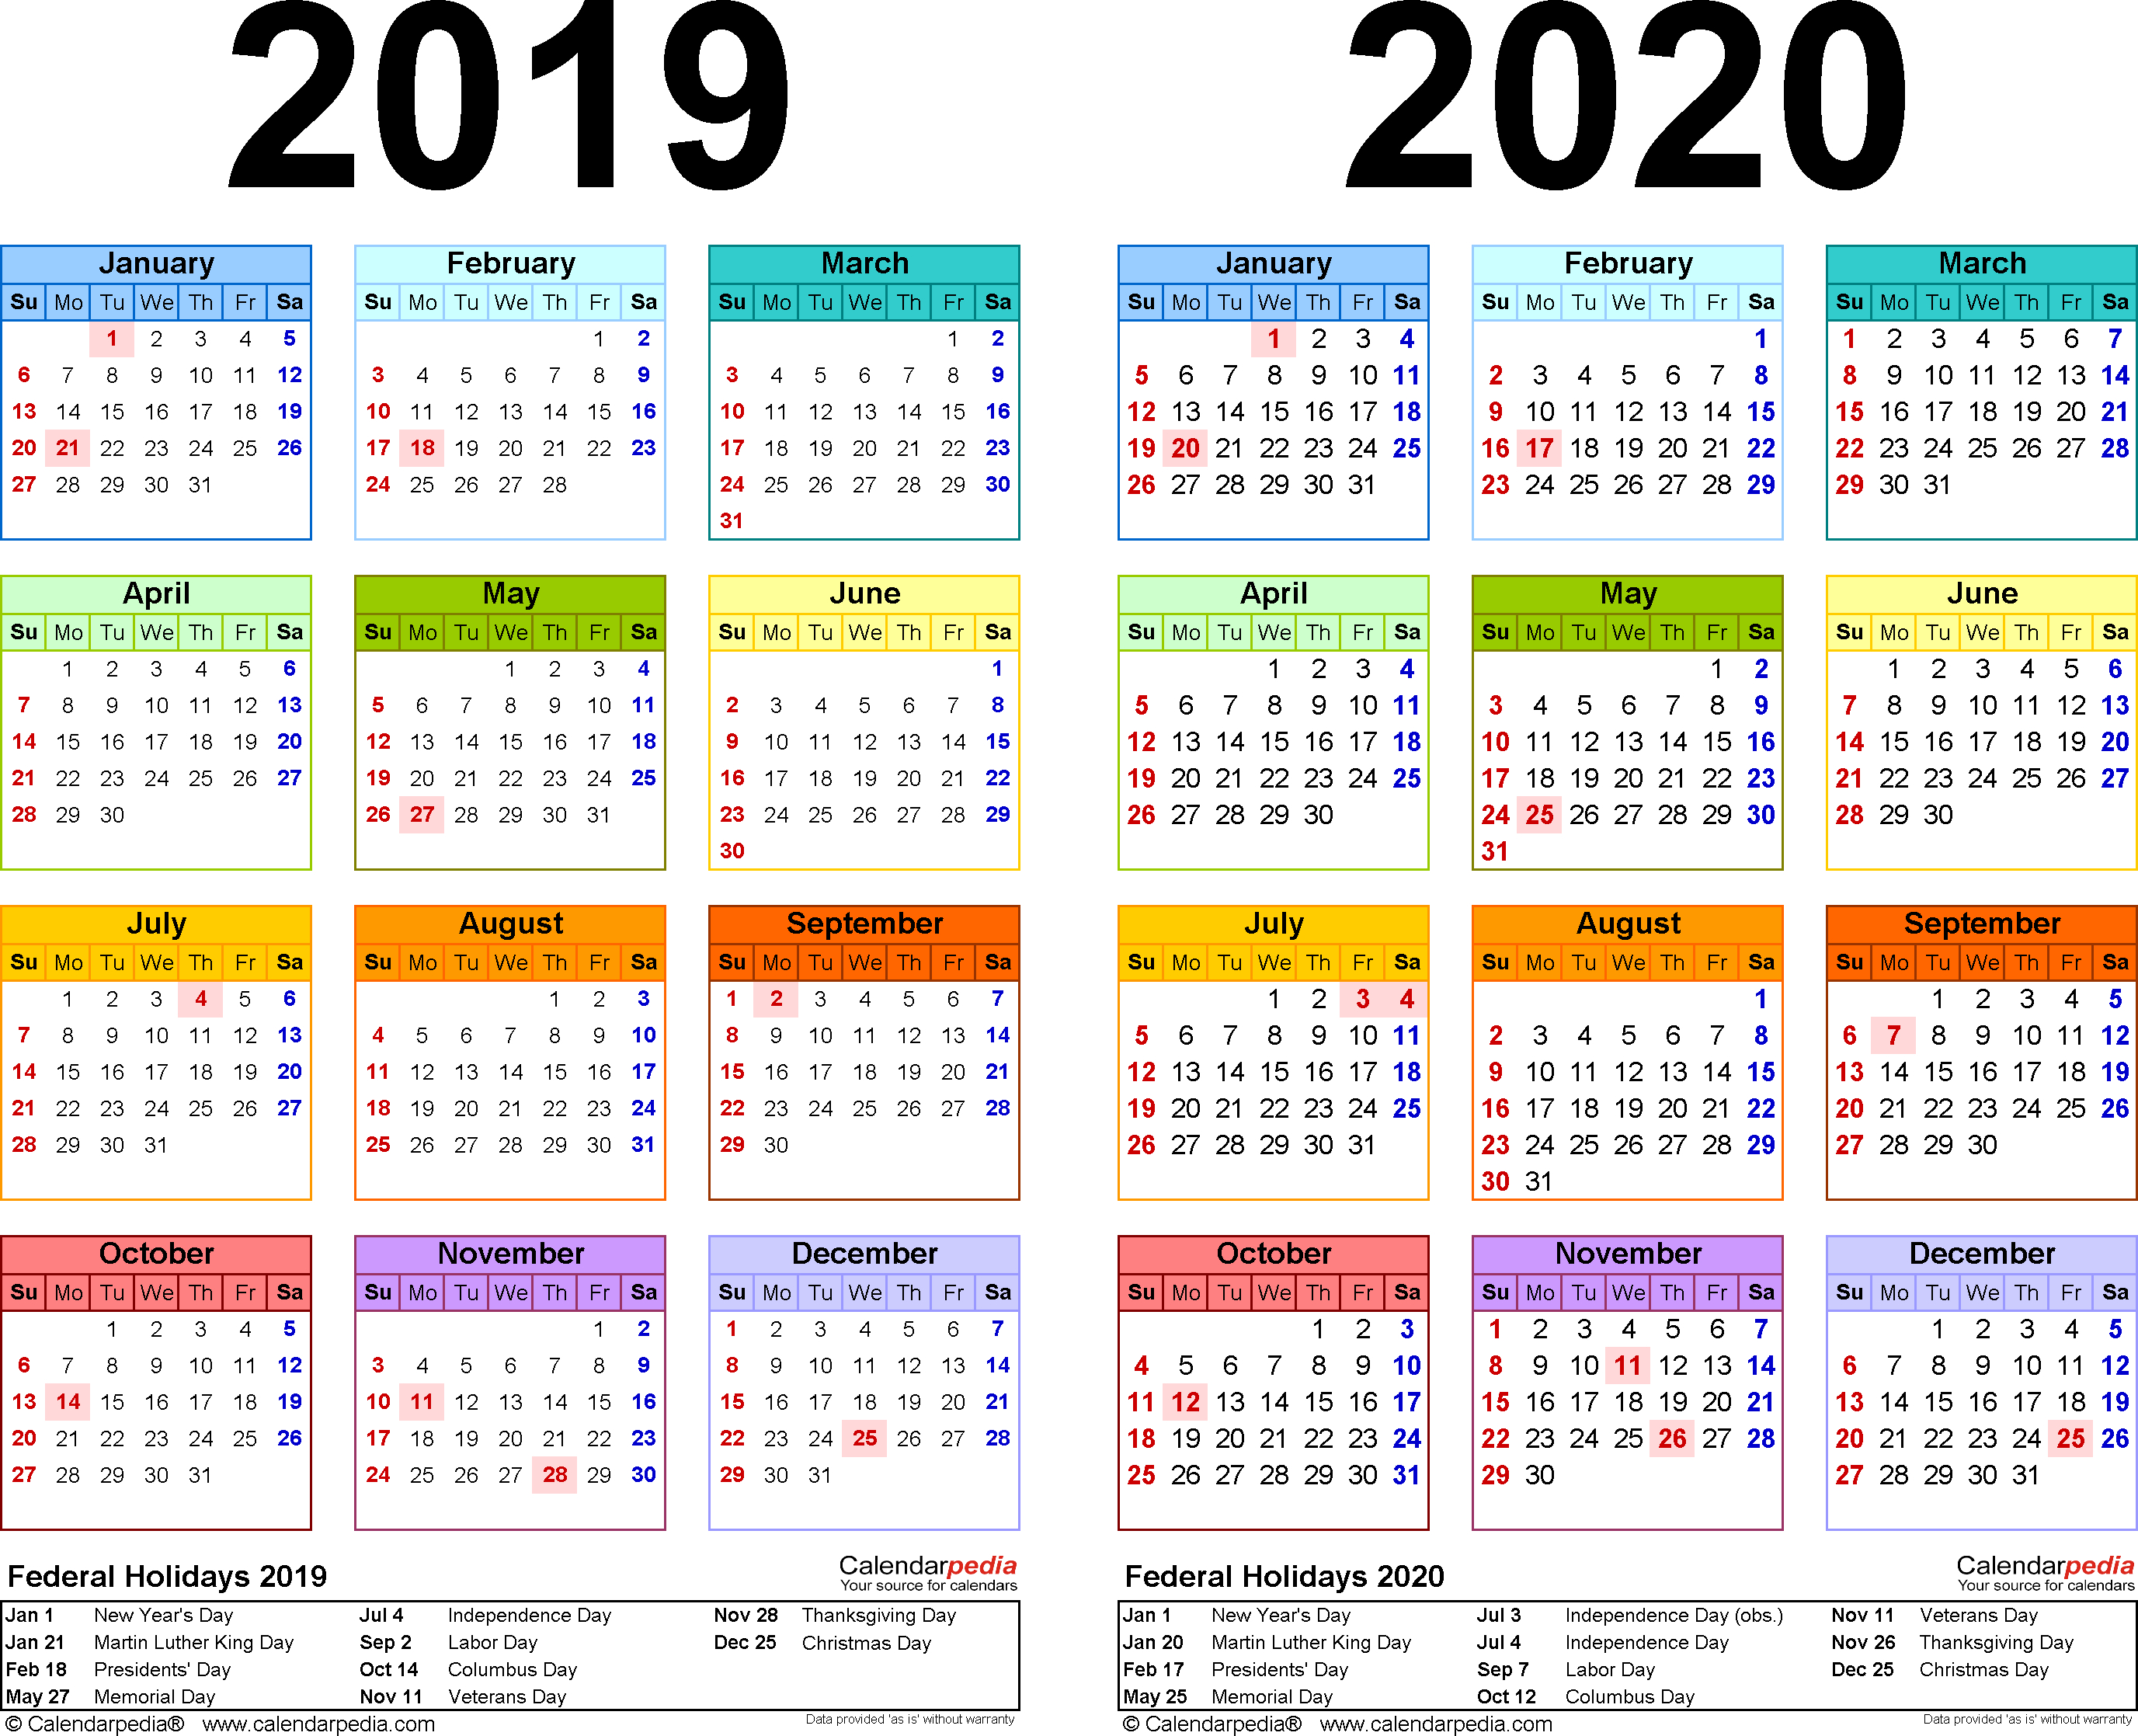 2019-2020 Calendar - Free Printable Two-Year Pdf Calendars regarding 1 Page Calendar 2019-2020 With Major Holidays